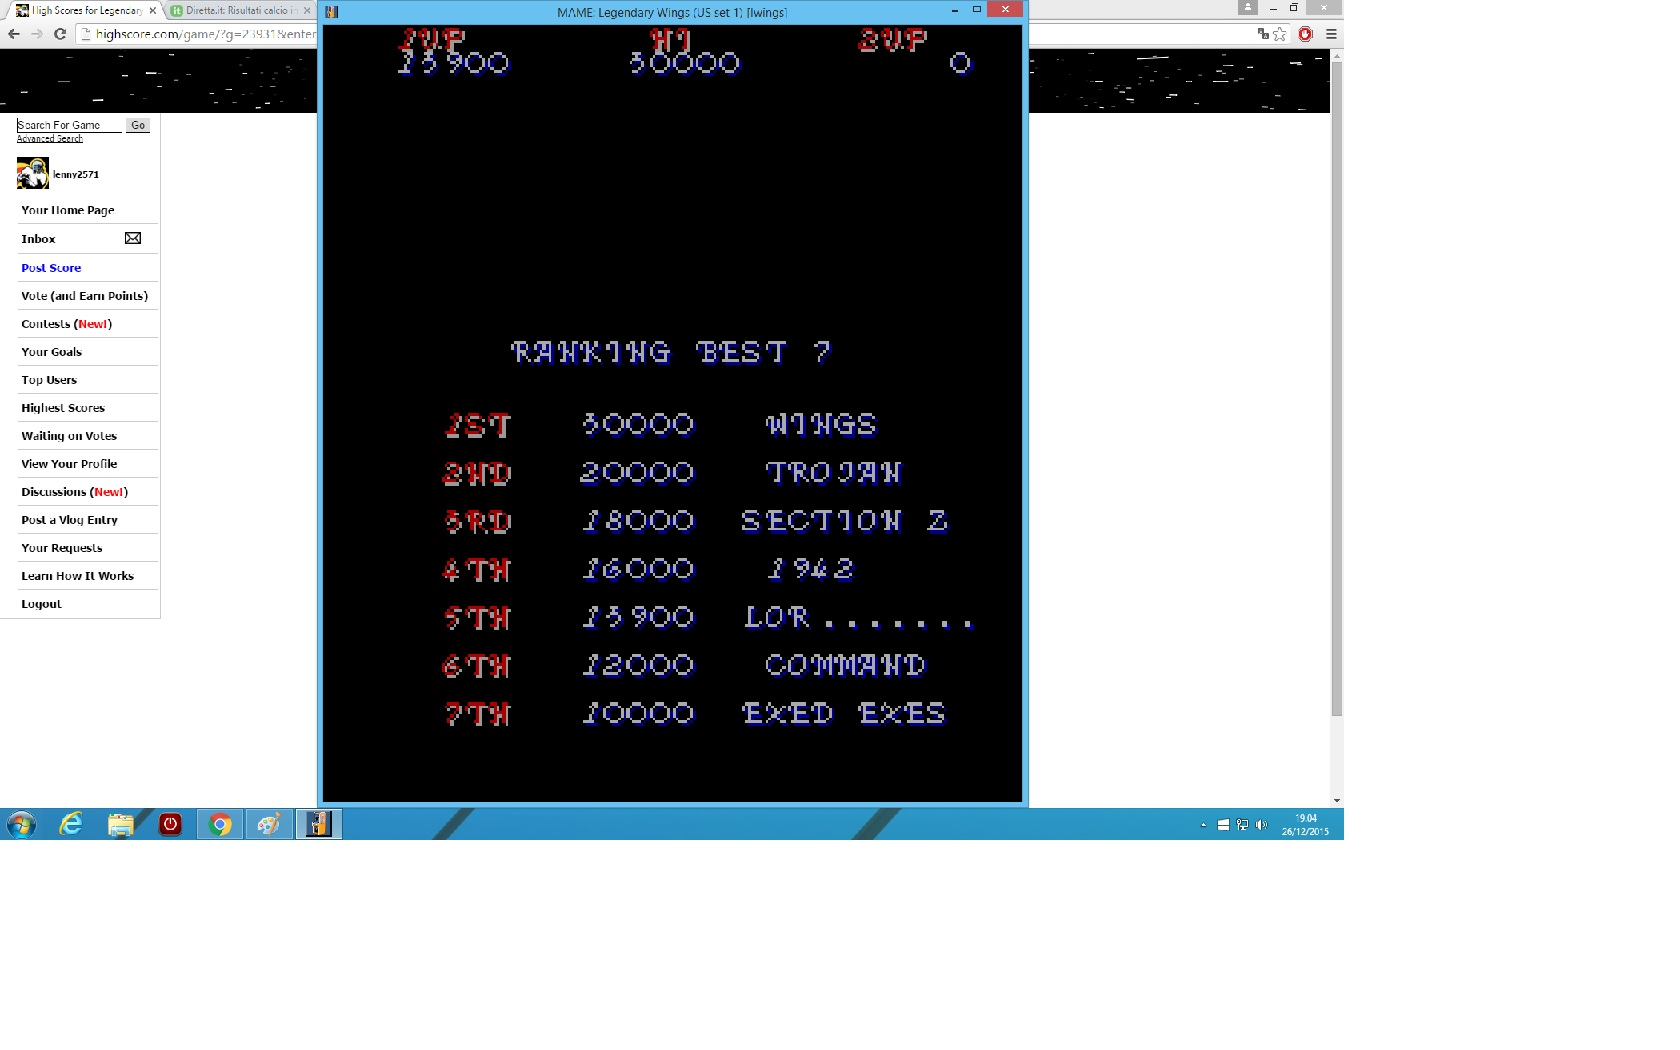 lenny2571: Legendary Wings [US Set 1] [lwings] (Arcade Emulated / M.A.M.E.) 13,900 points on 2015-12-26 12:05:56